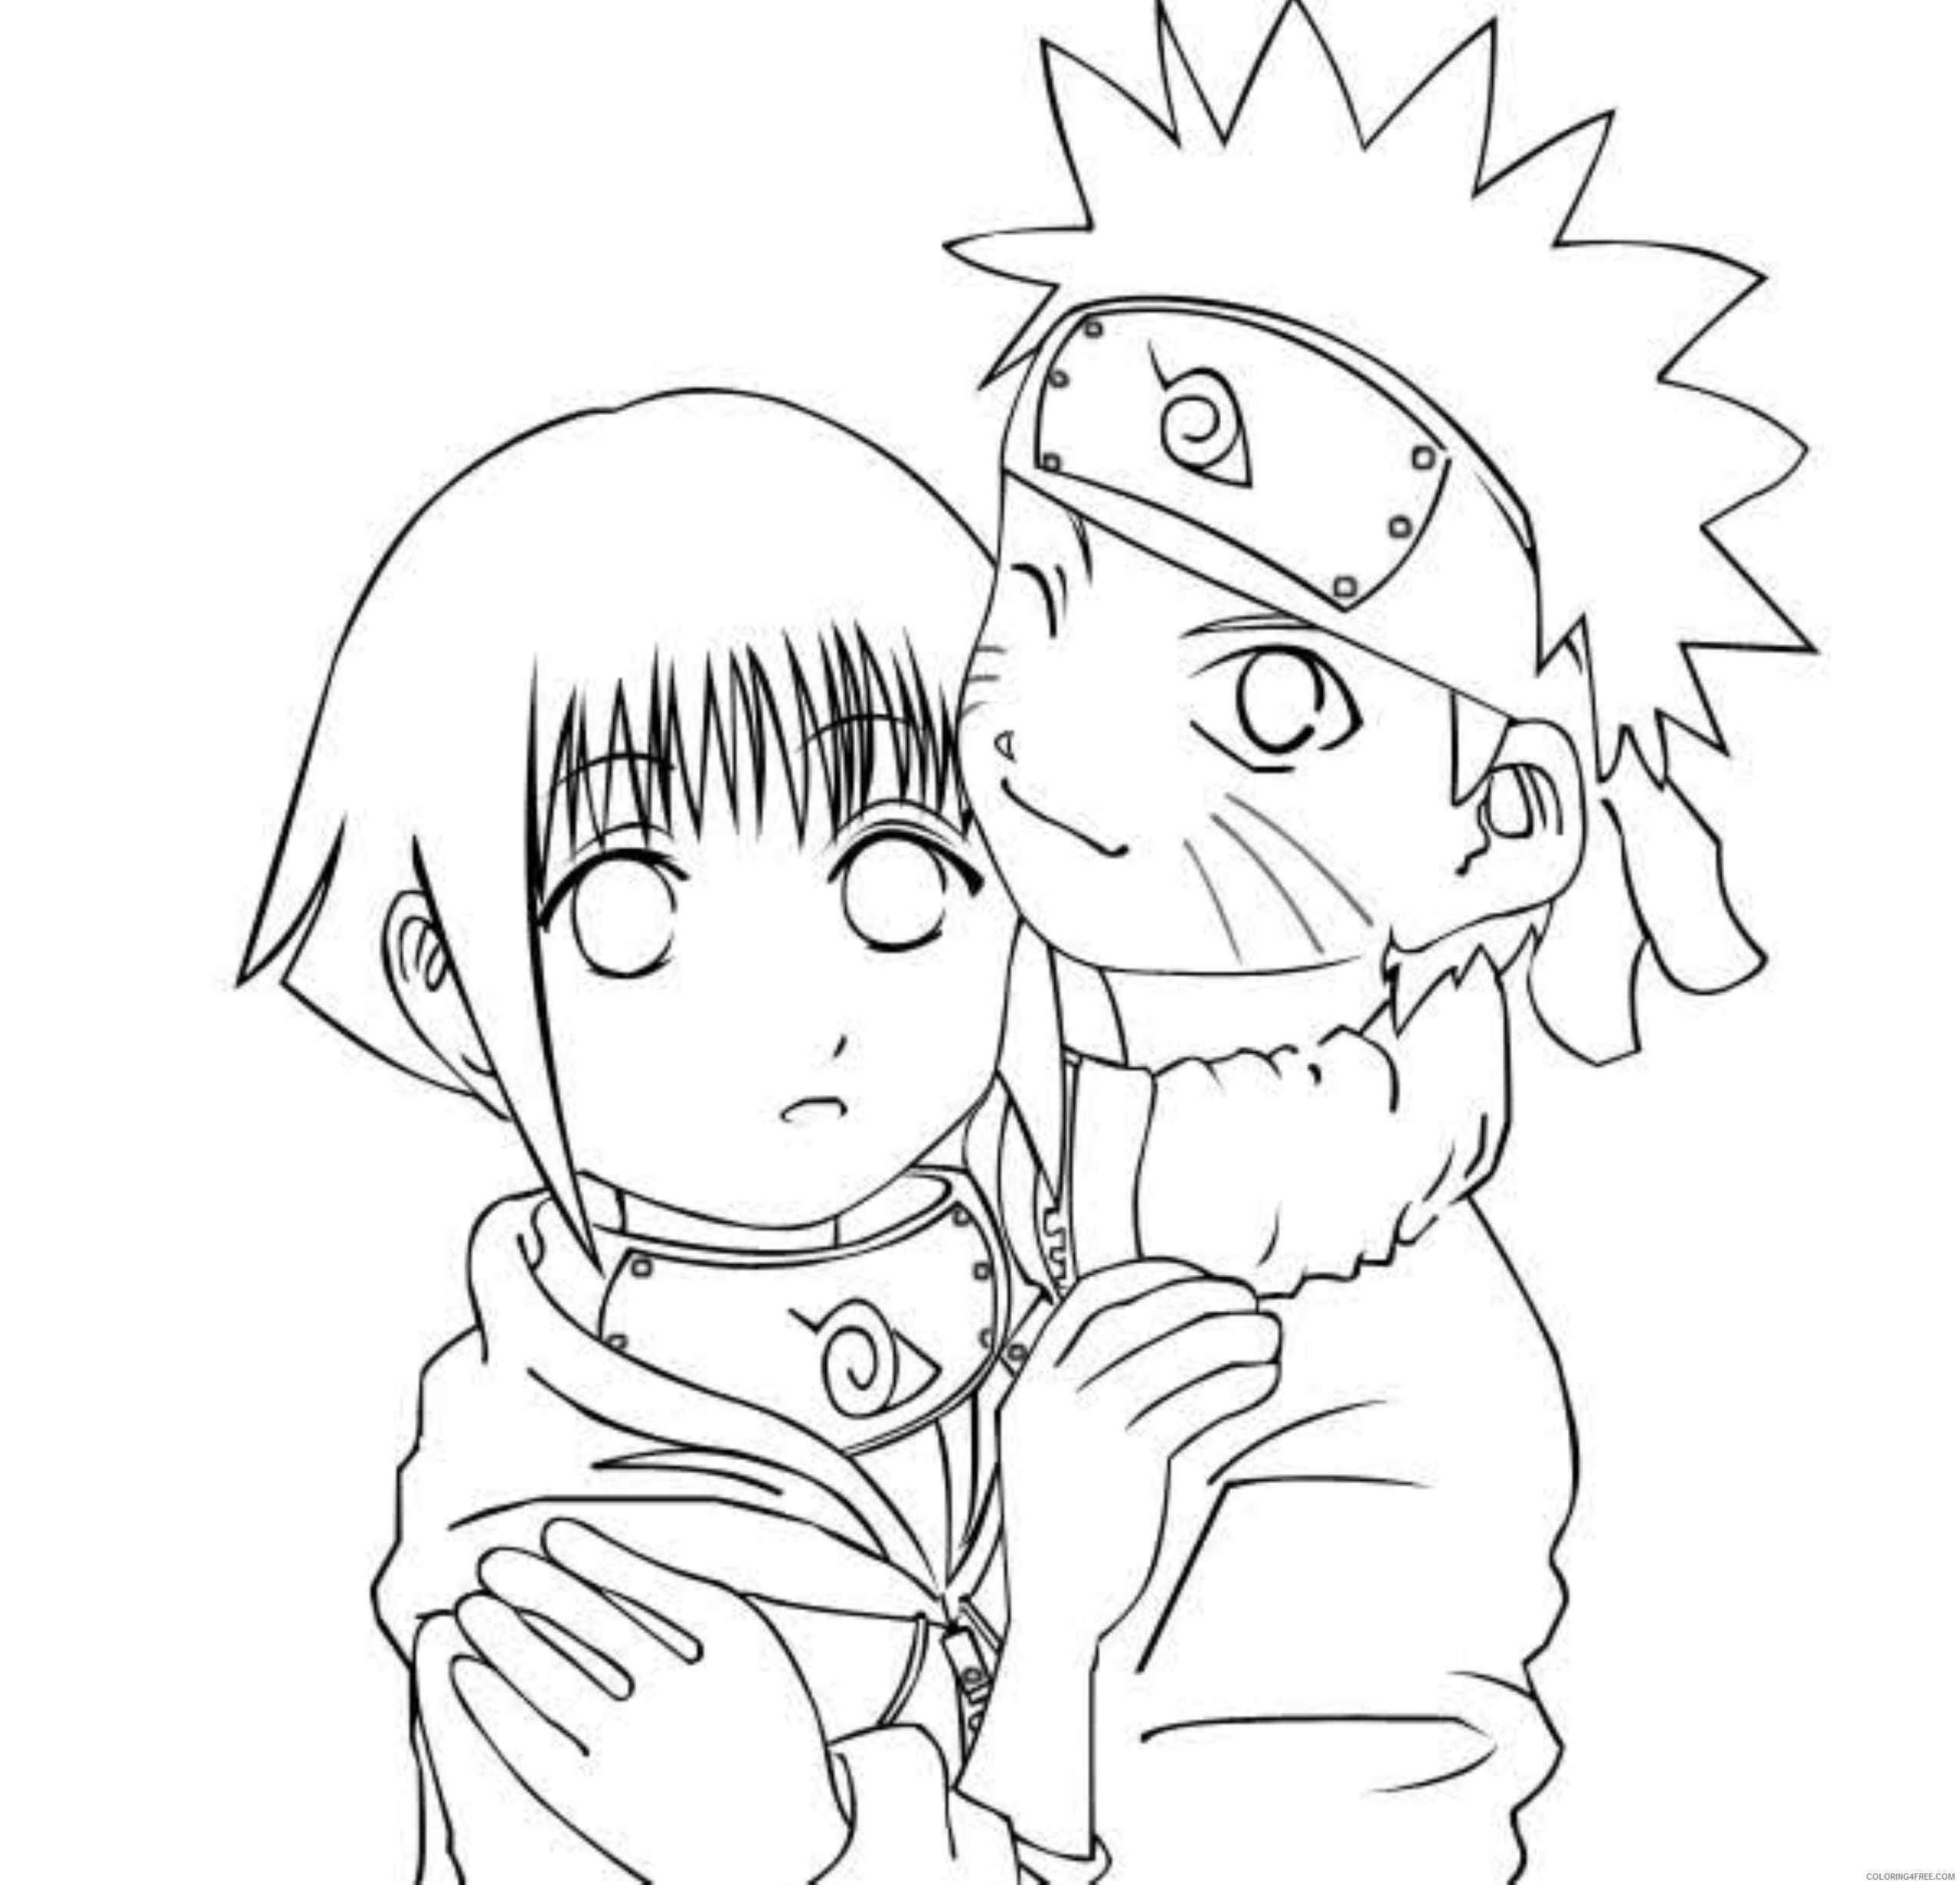 Gambar Coloring Night Guy Naruto Coloring Pages Jpeg Png Gif - Best ...